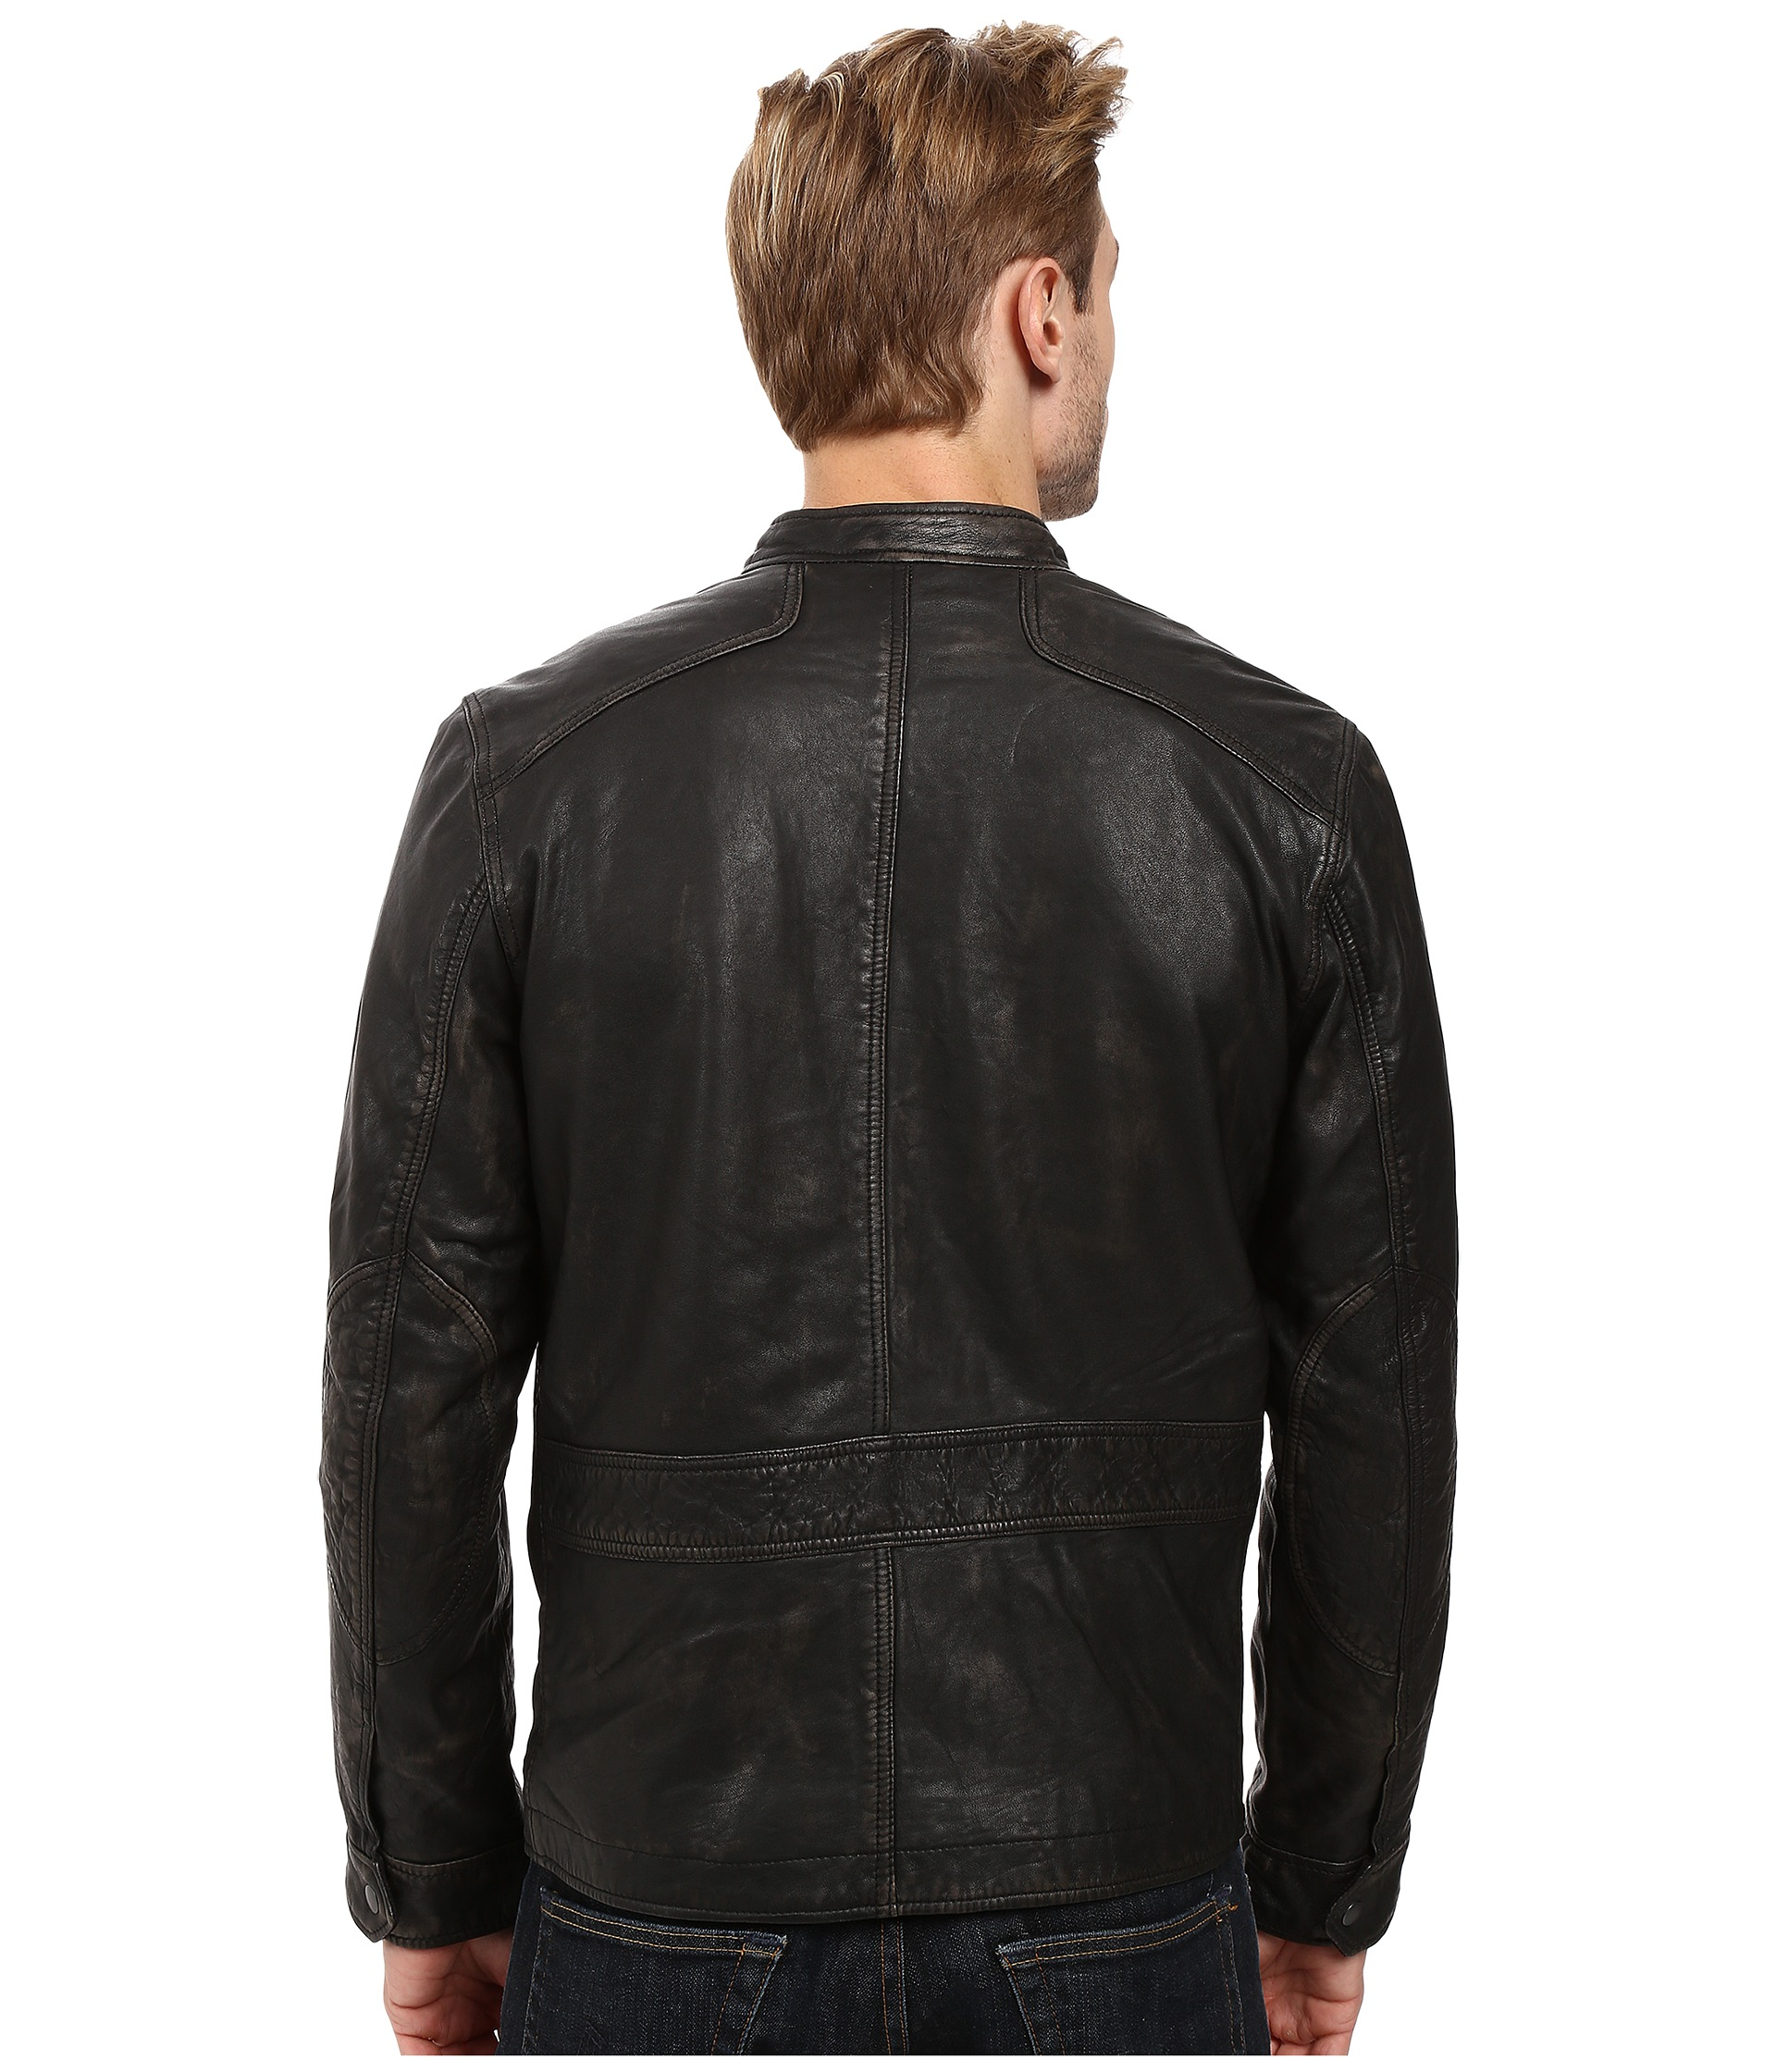 how to clean leather jacket after long ride